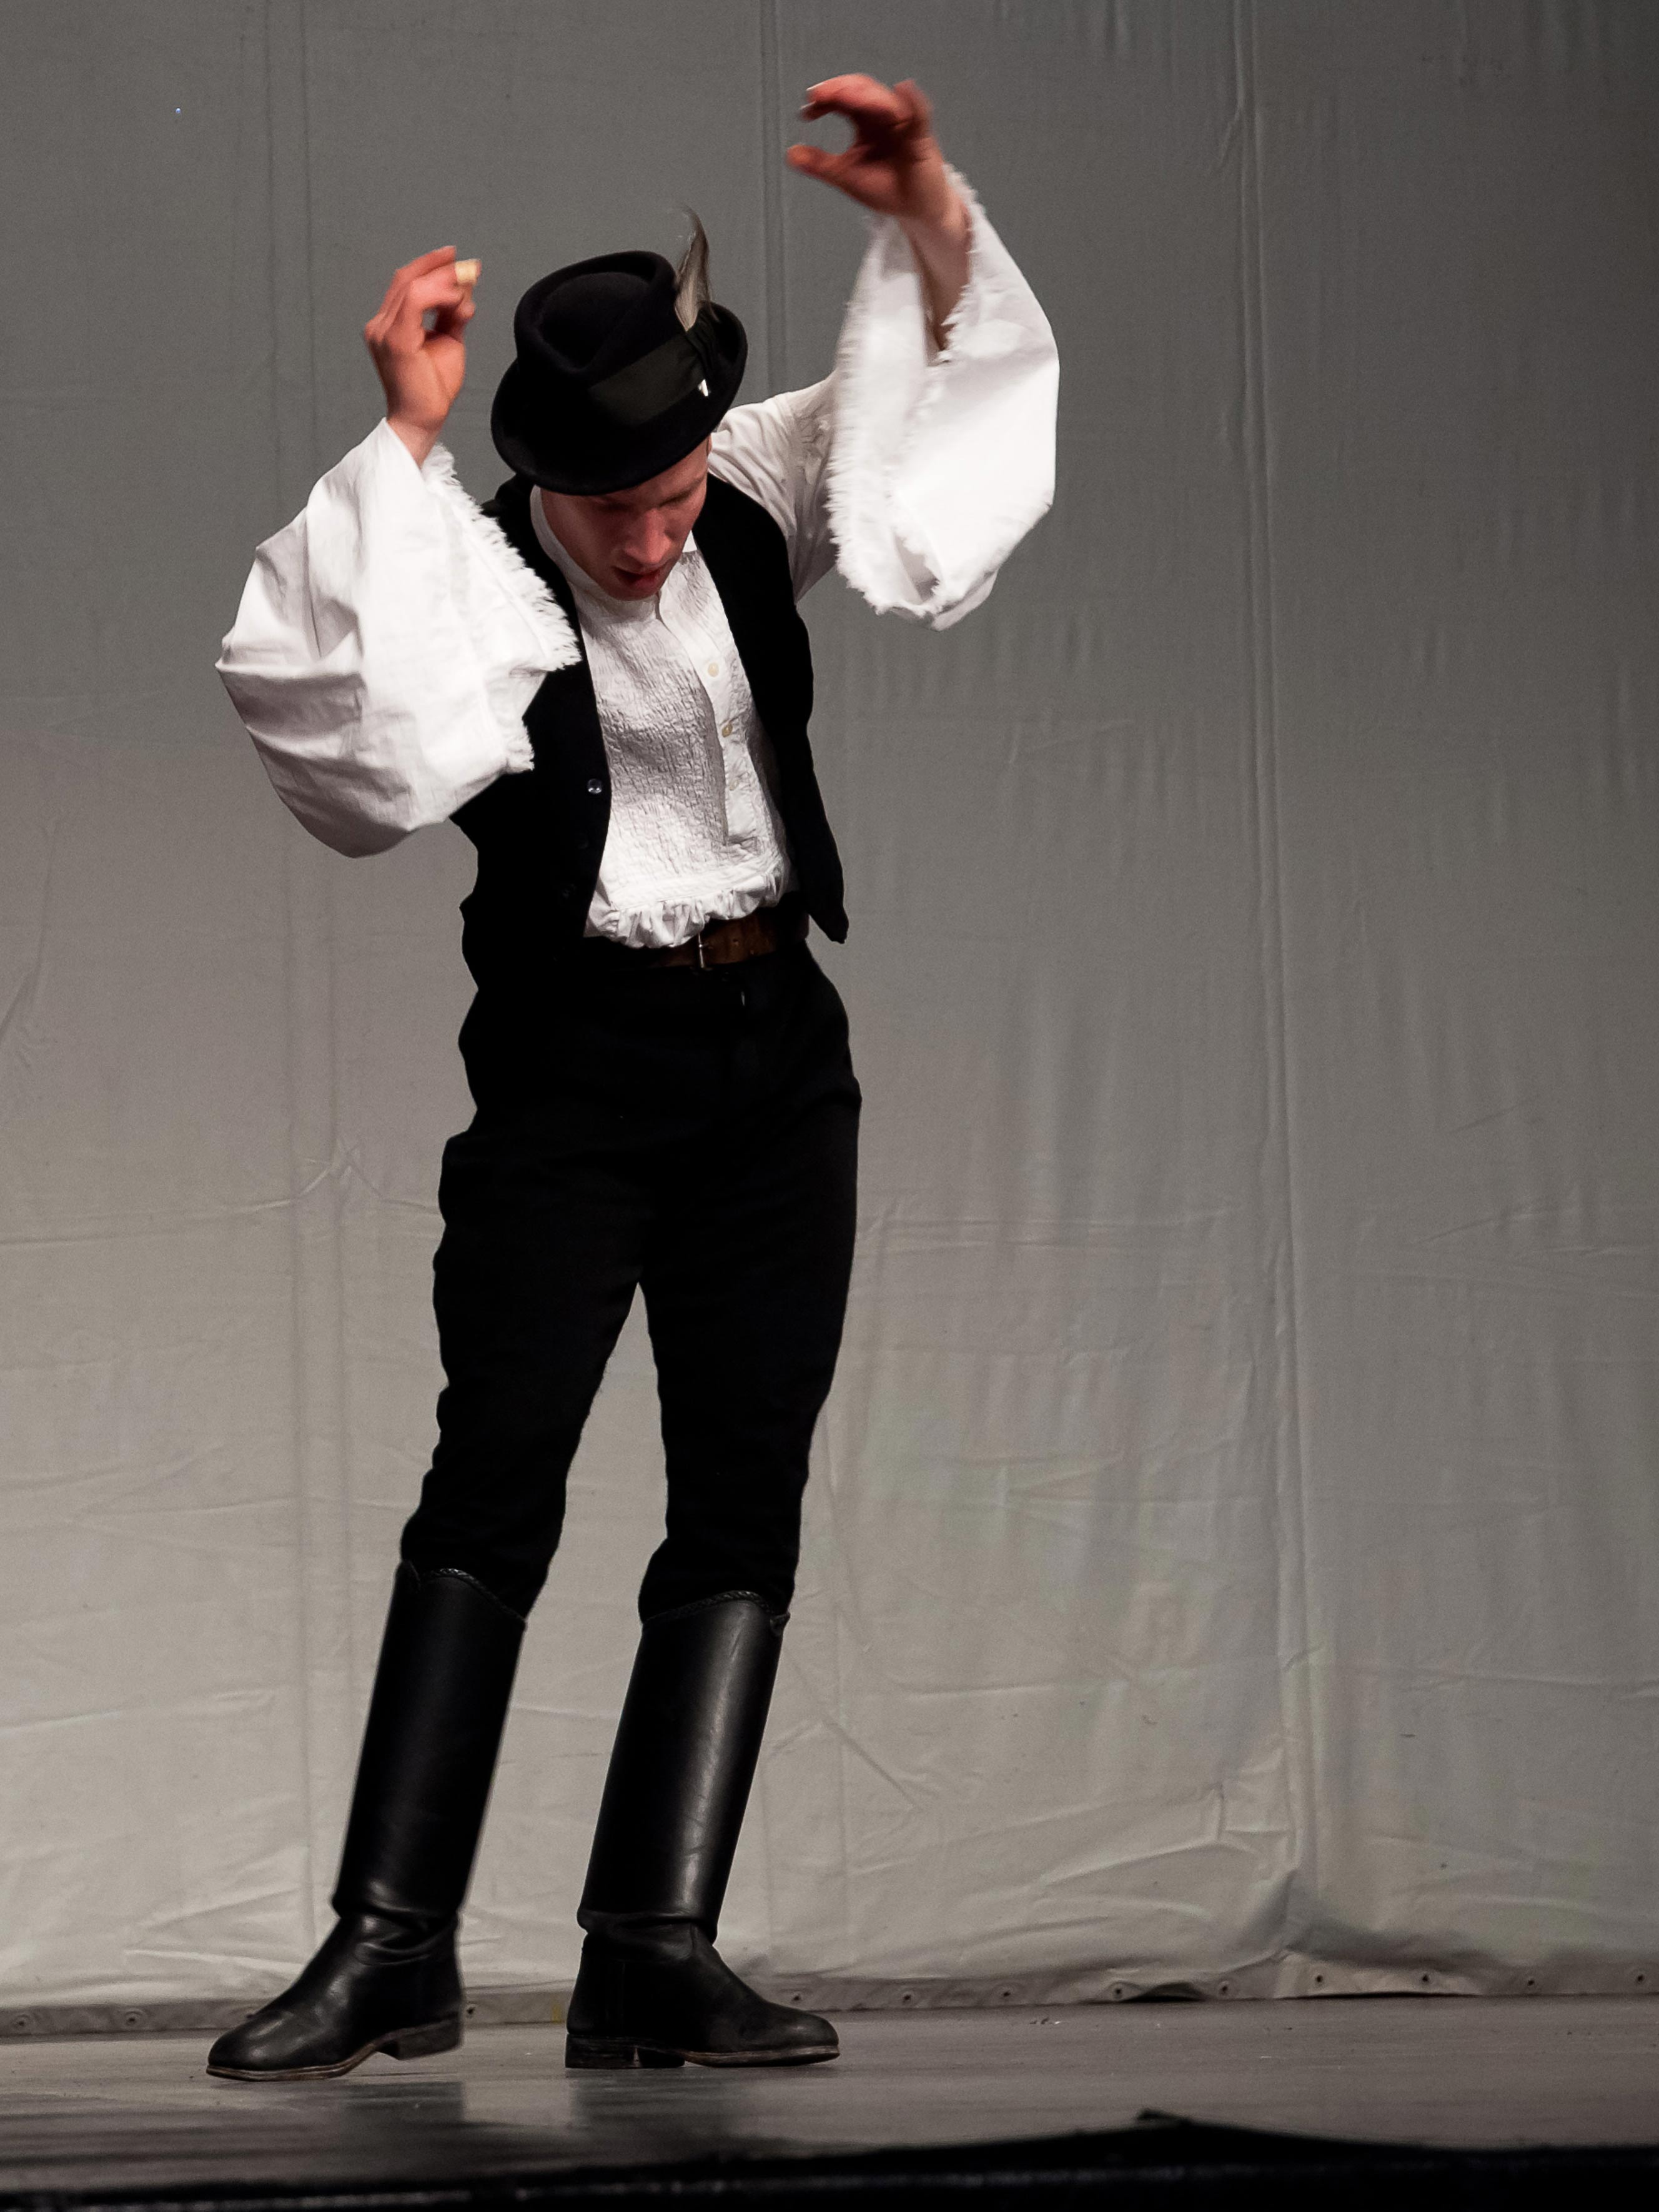 A male dancer performing on stage